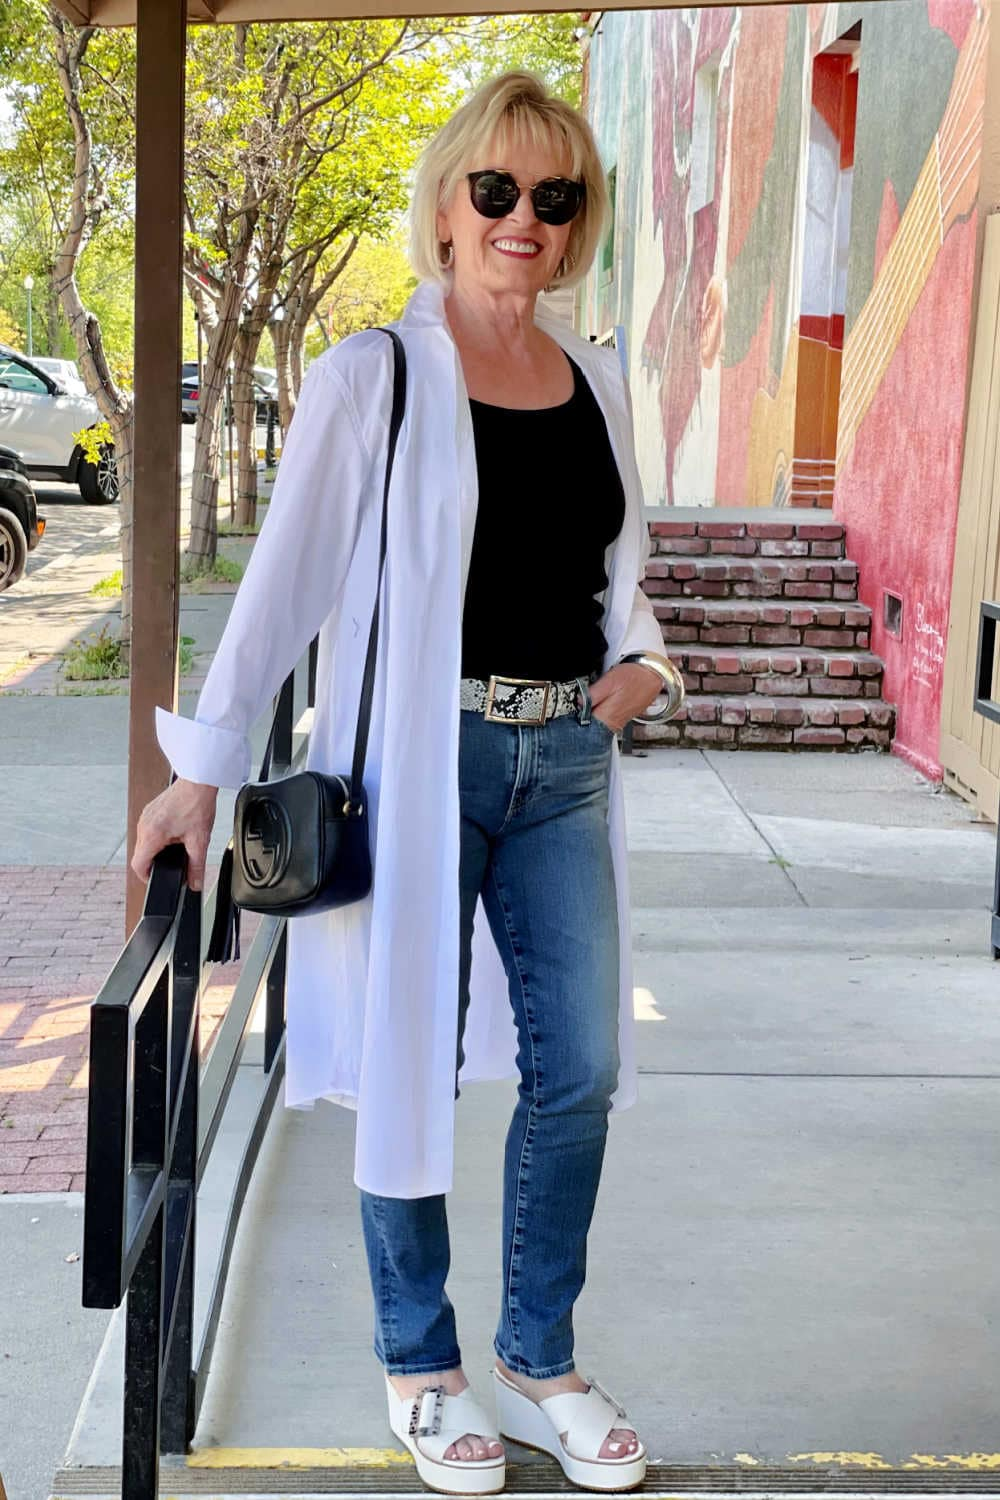 woman in white duster and blue jeans on steps